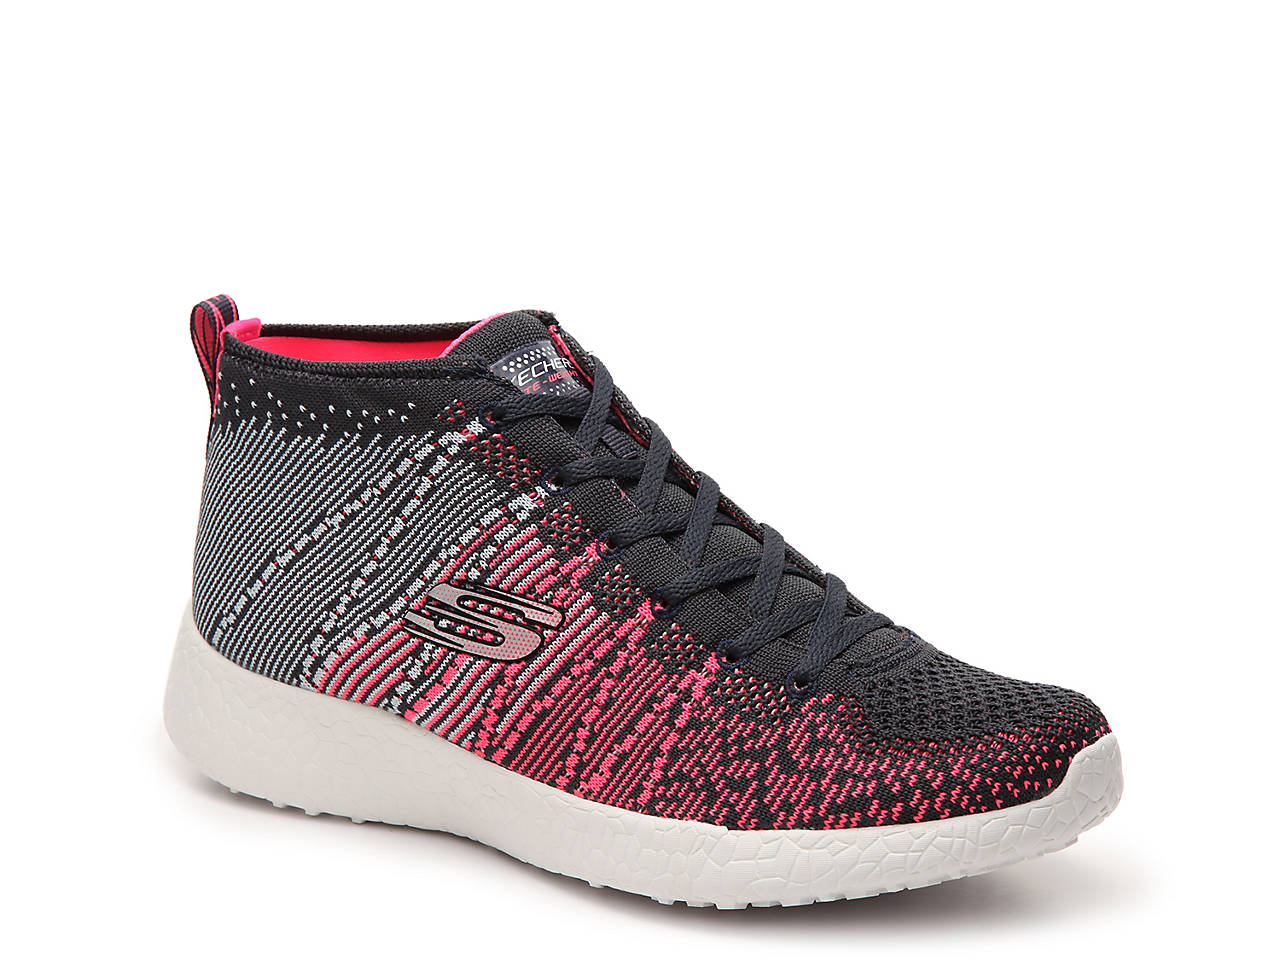 8595a1e72632 Skechers Burst Sweet Symphony High-Top Sneaker - Women s Women s ...